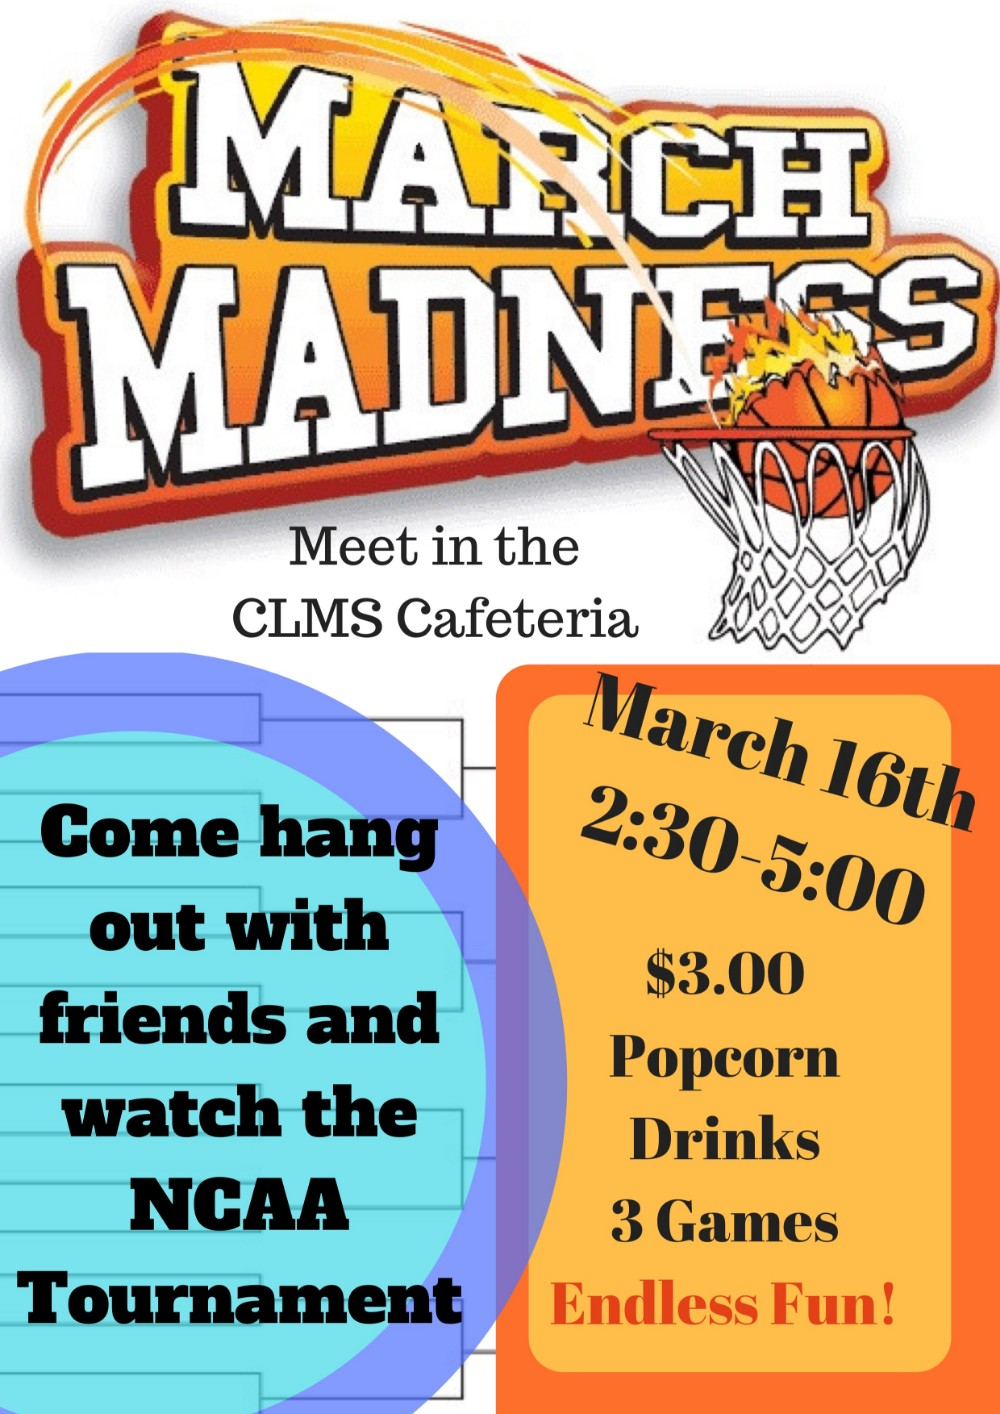 Join us to Watch the NCAA Tournament